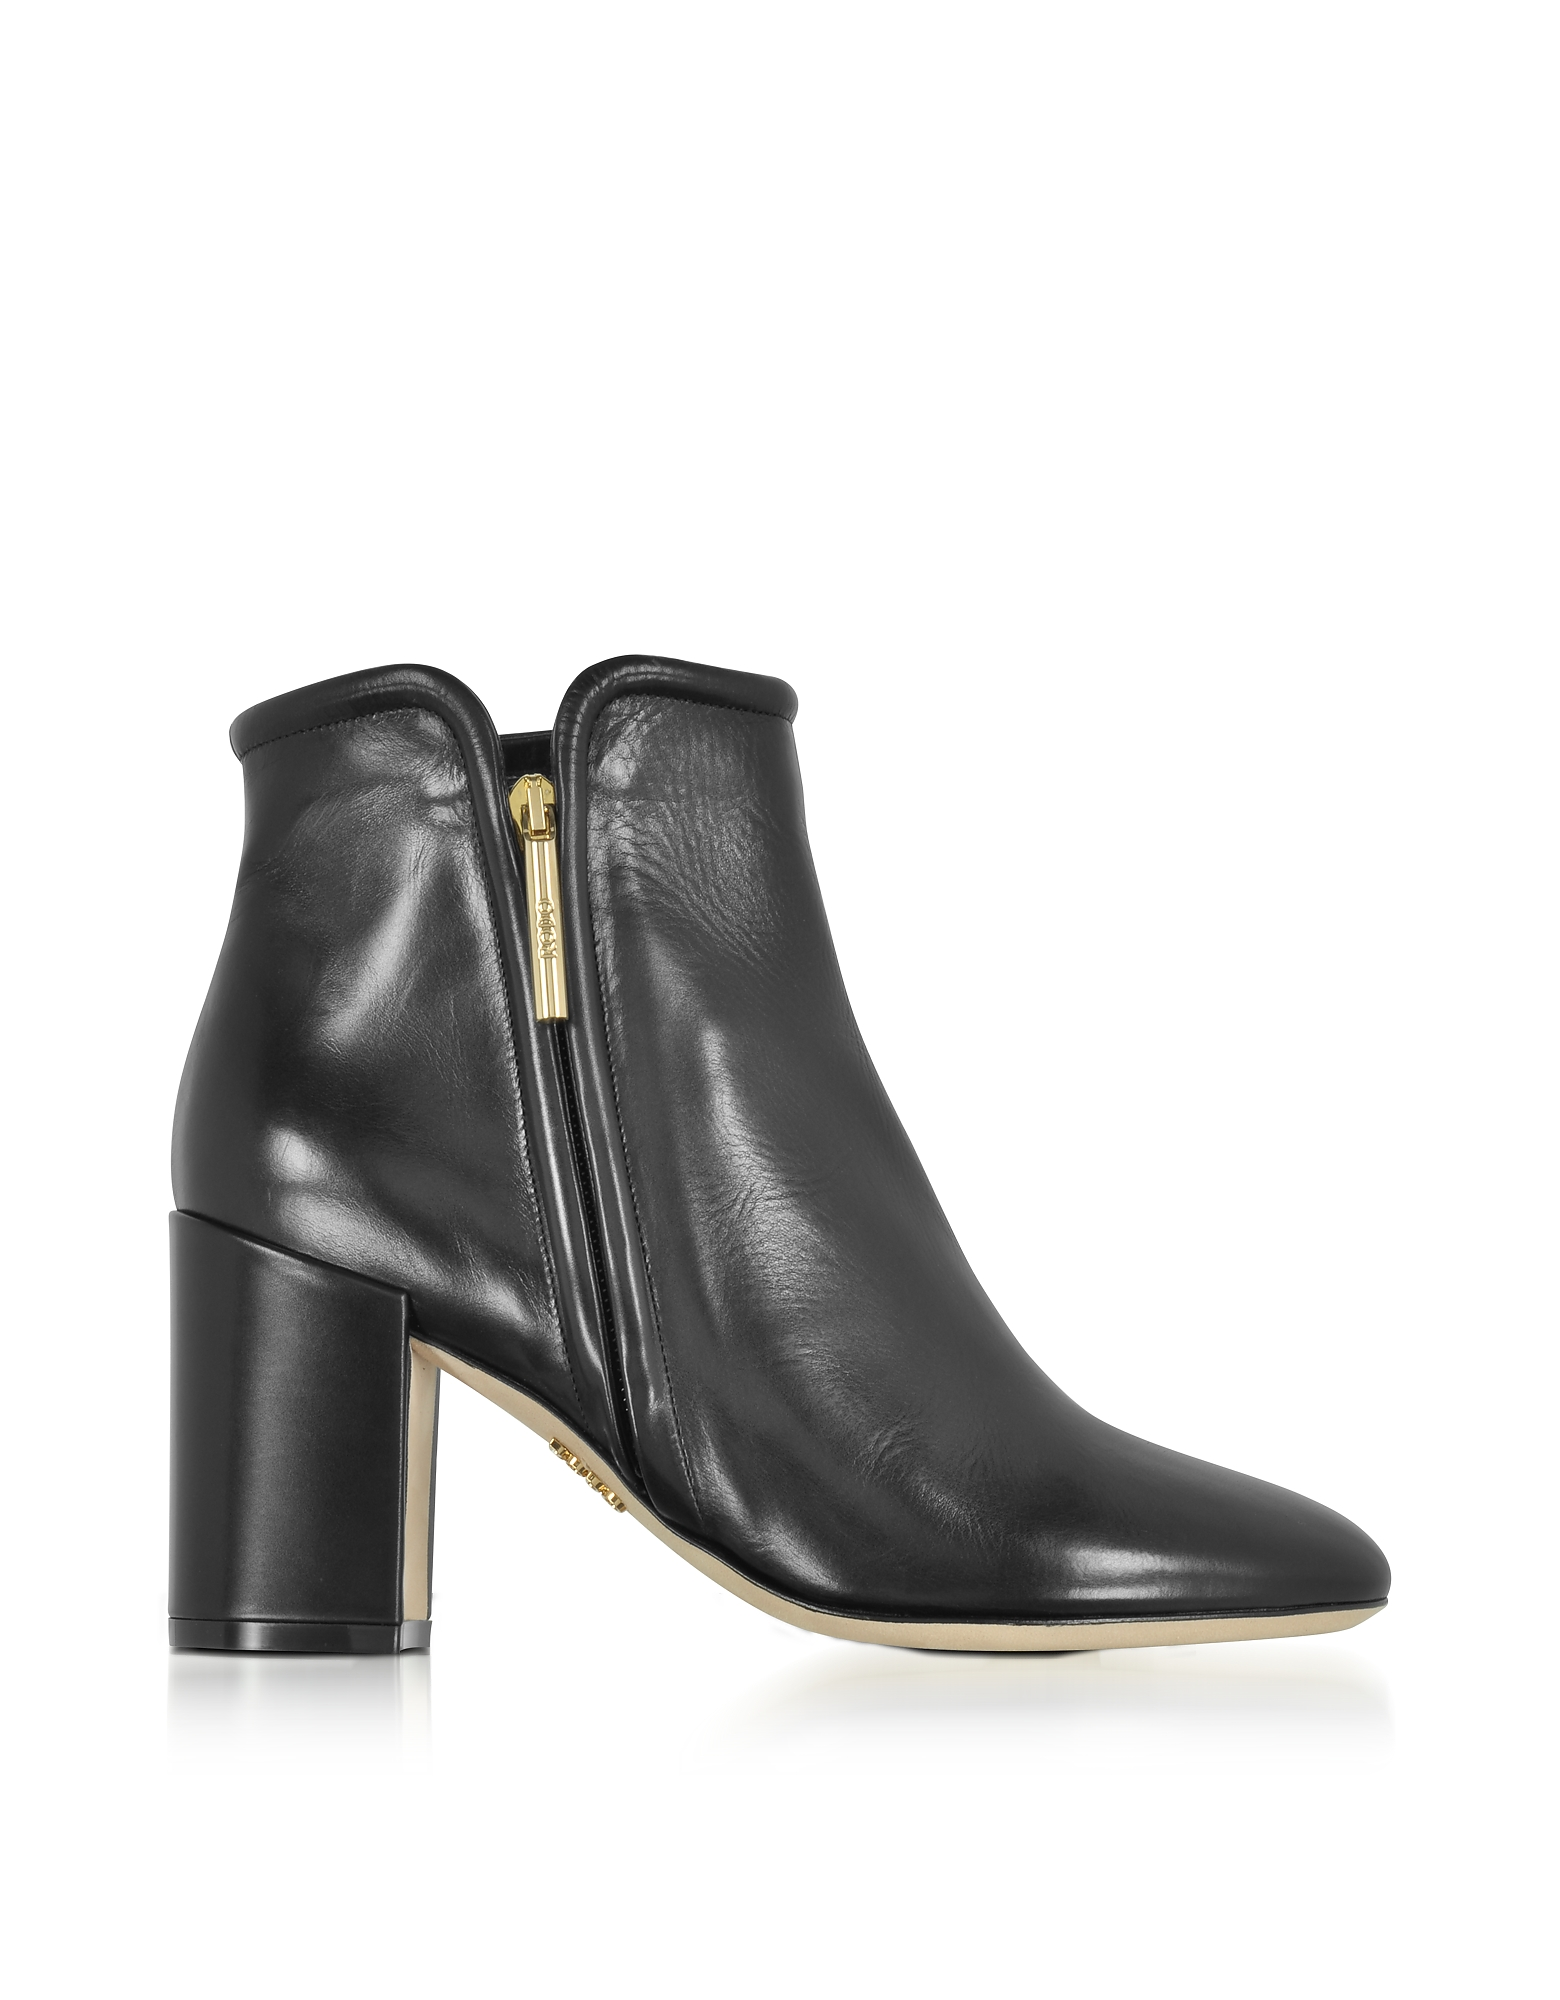 Rodo Shoes, Black Leather Heel Ankle Boots